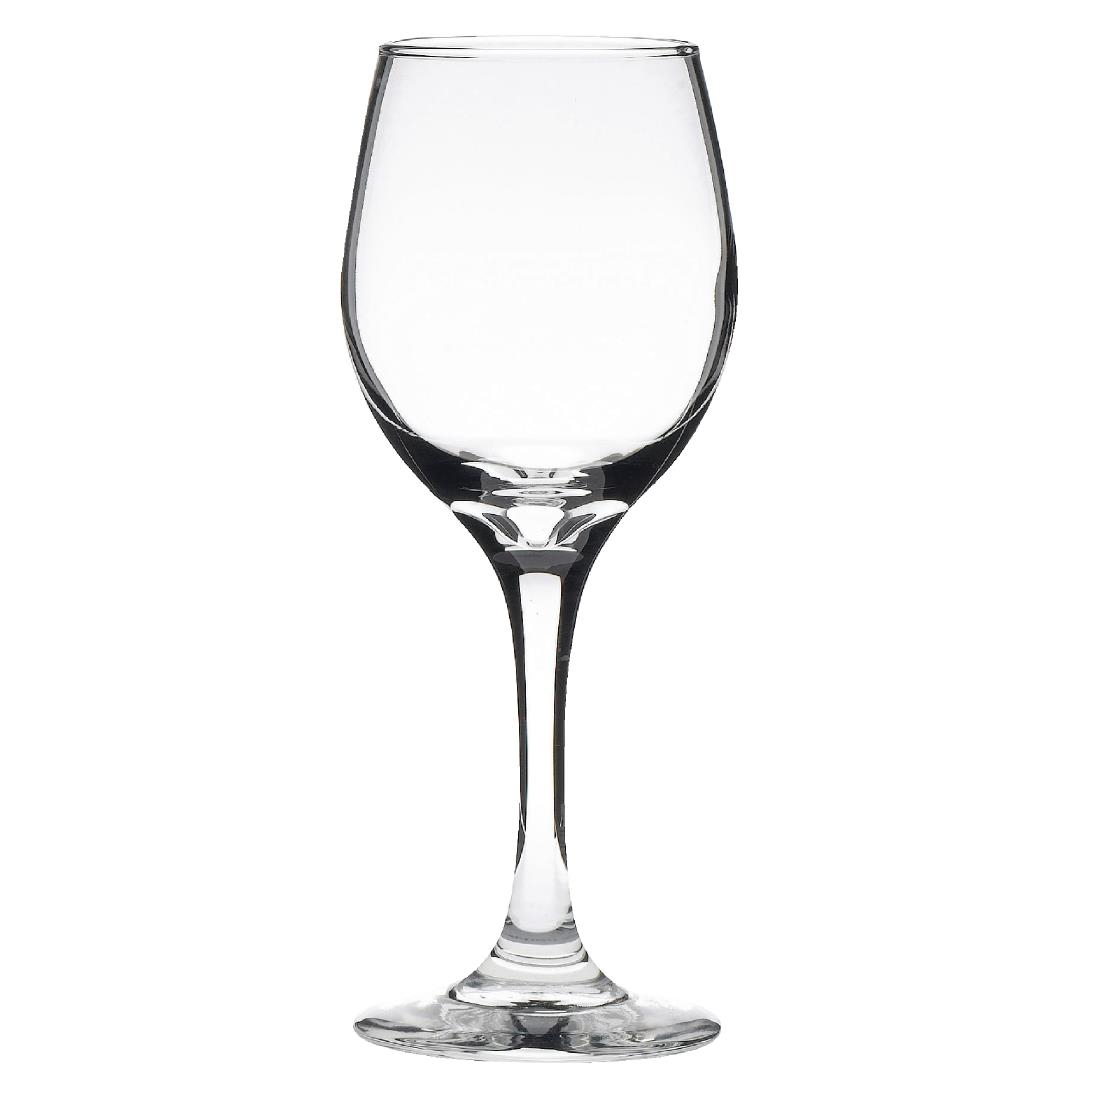 Libbey Perception Wine Glasses 240ml Pack of 12